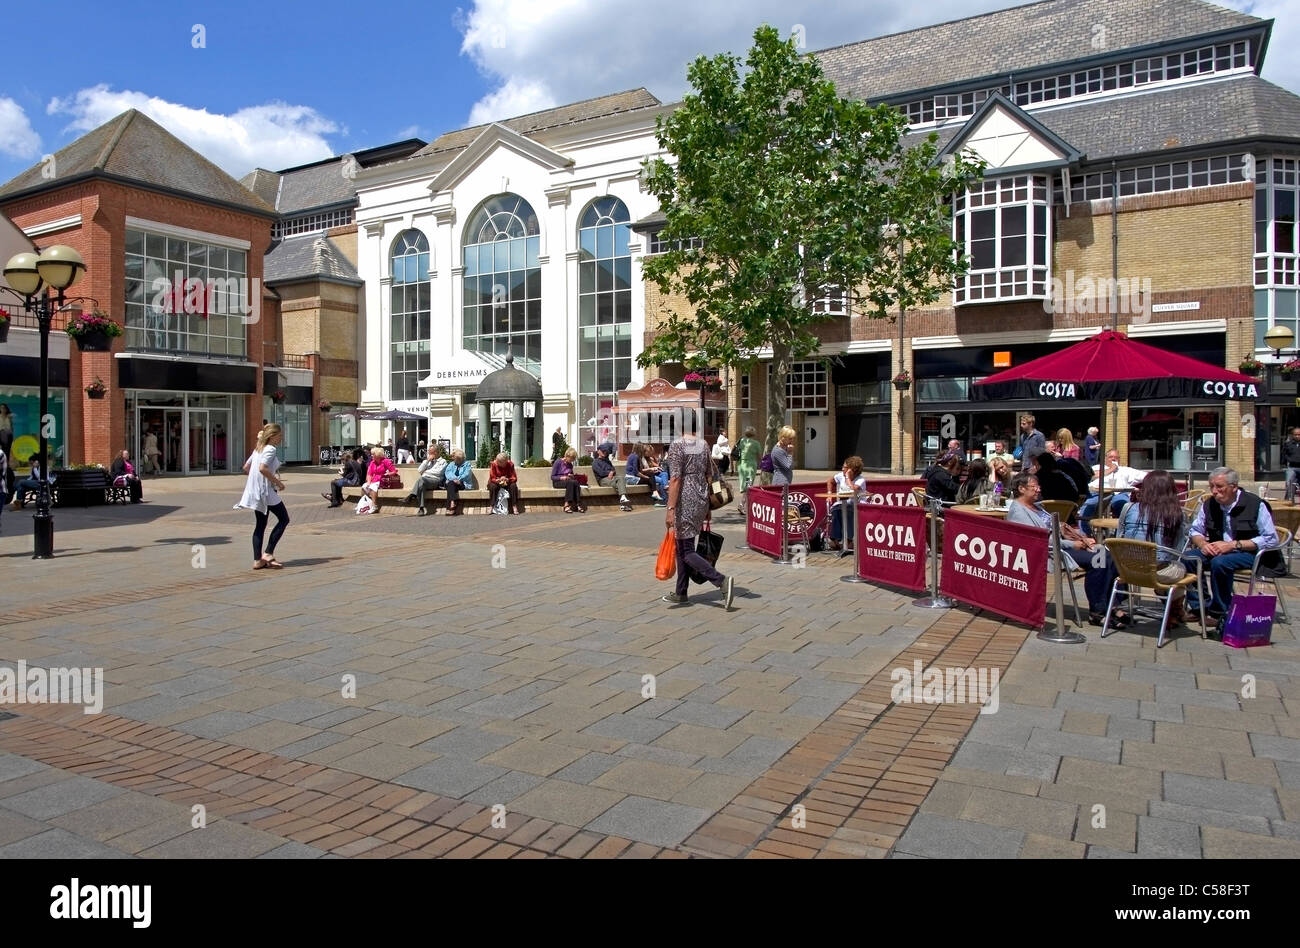 035a69cb29 Shopping area in the centre of Colchester with usual branded shops like  Debenhams,Costa Coffee and H&M